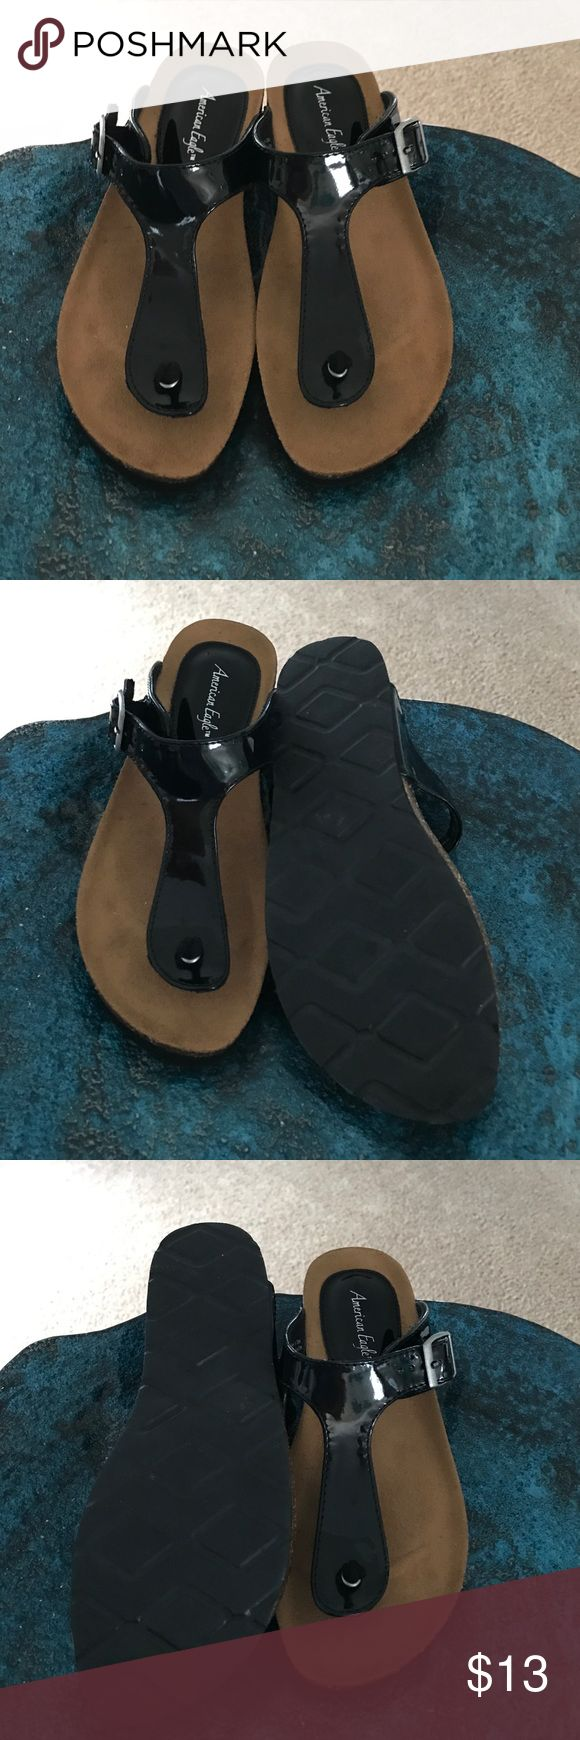 Black Patent Leather Sandals Black patent leather sandals from American Eagle. These cute little sandals are nearly new. They have only been worn a handful of times. American Eagle Outfitters Shoes Sandals